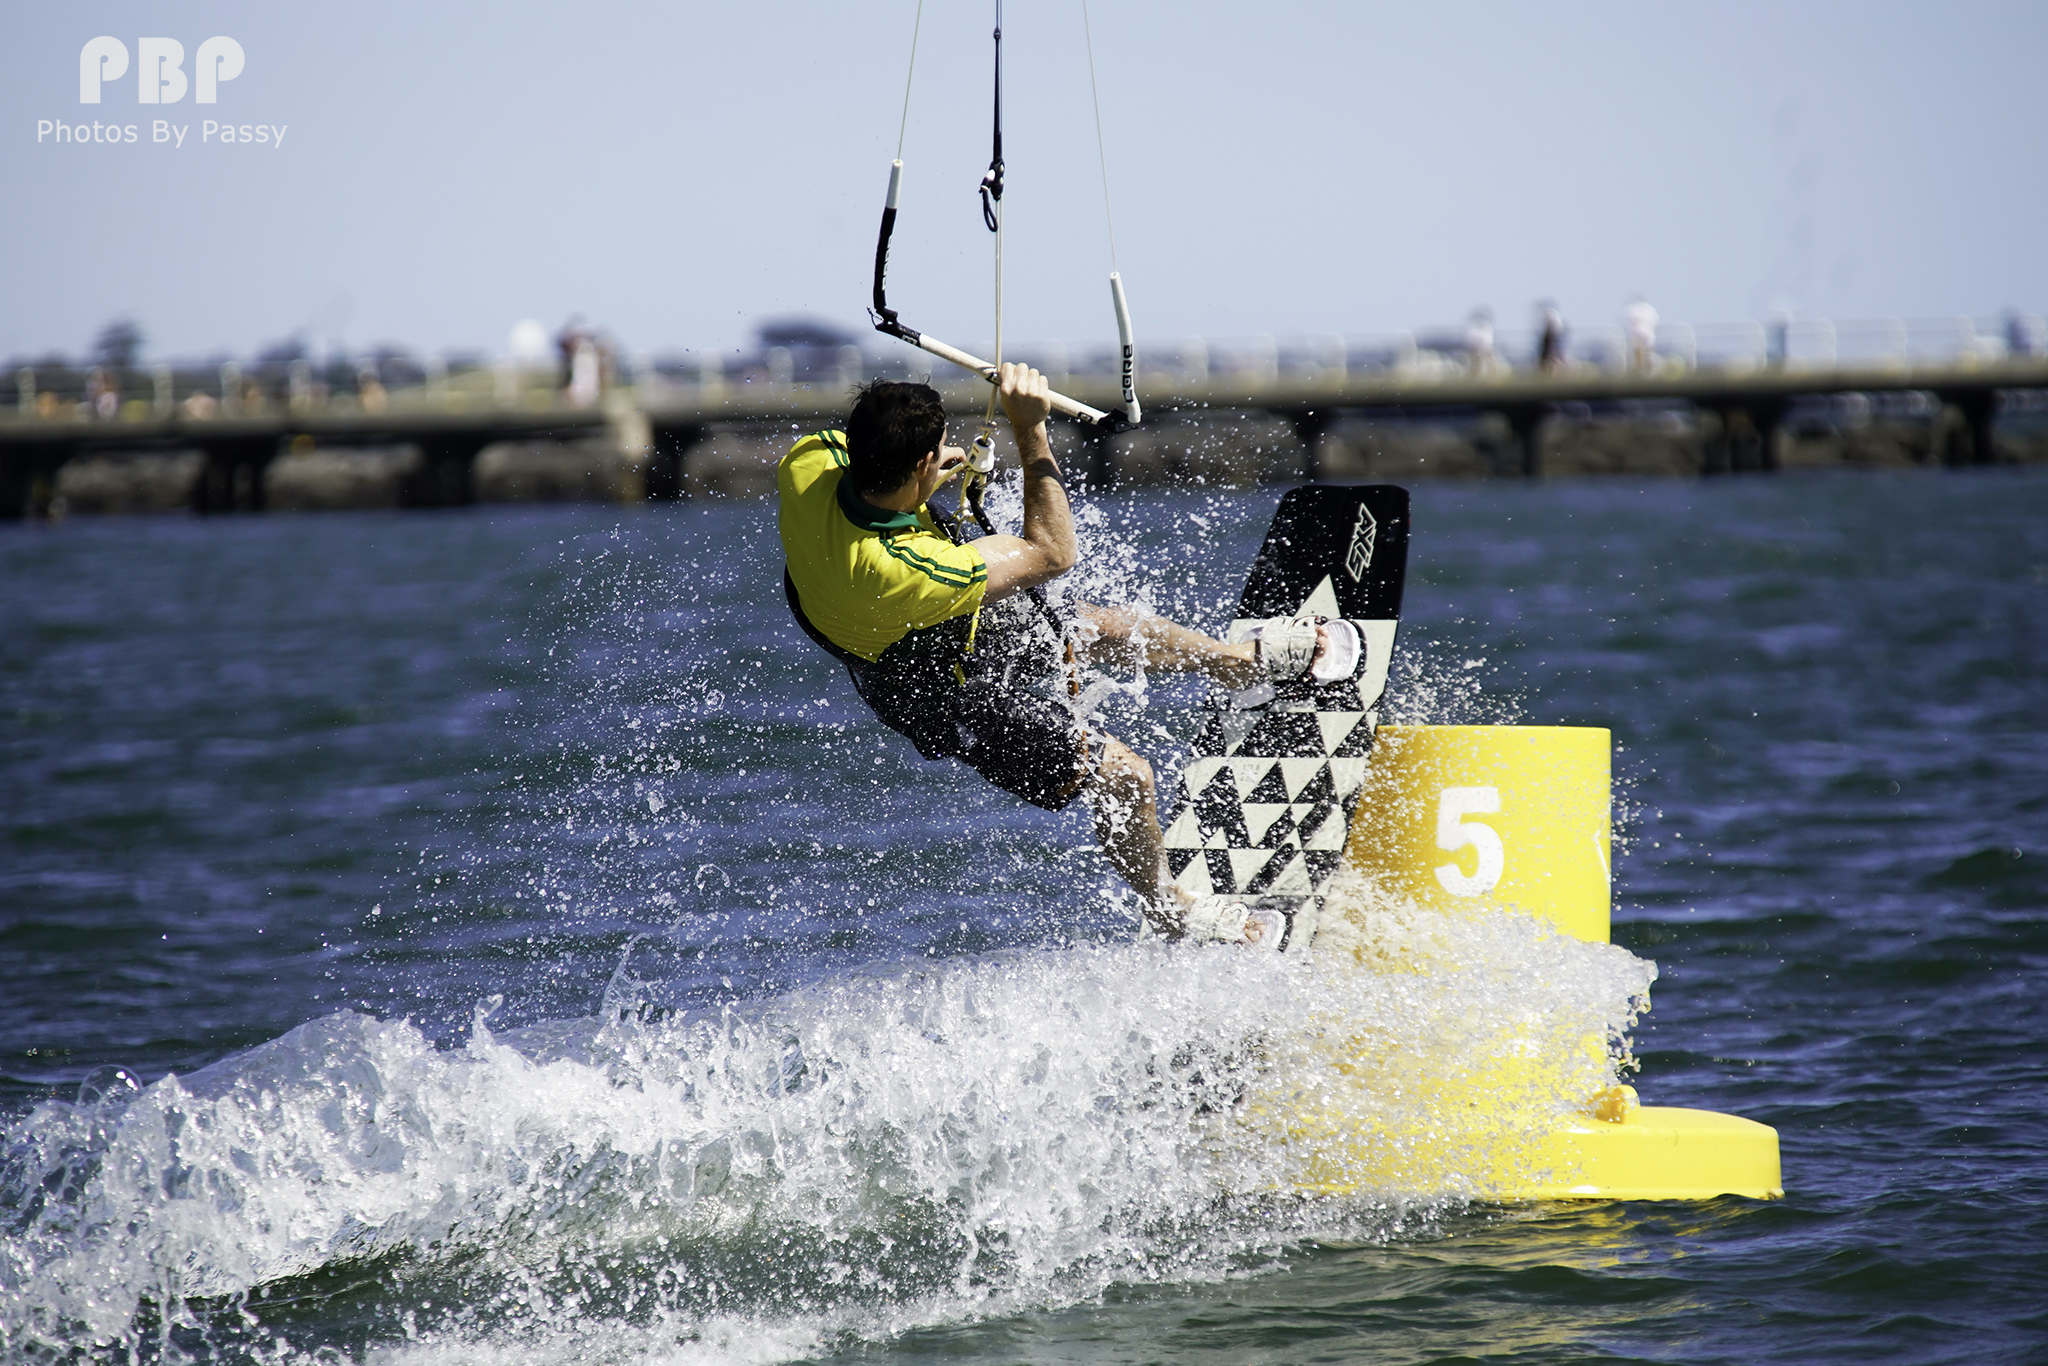 How to do Sports Photography Kite Boarding One